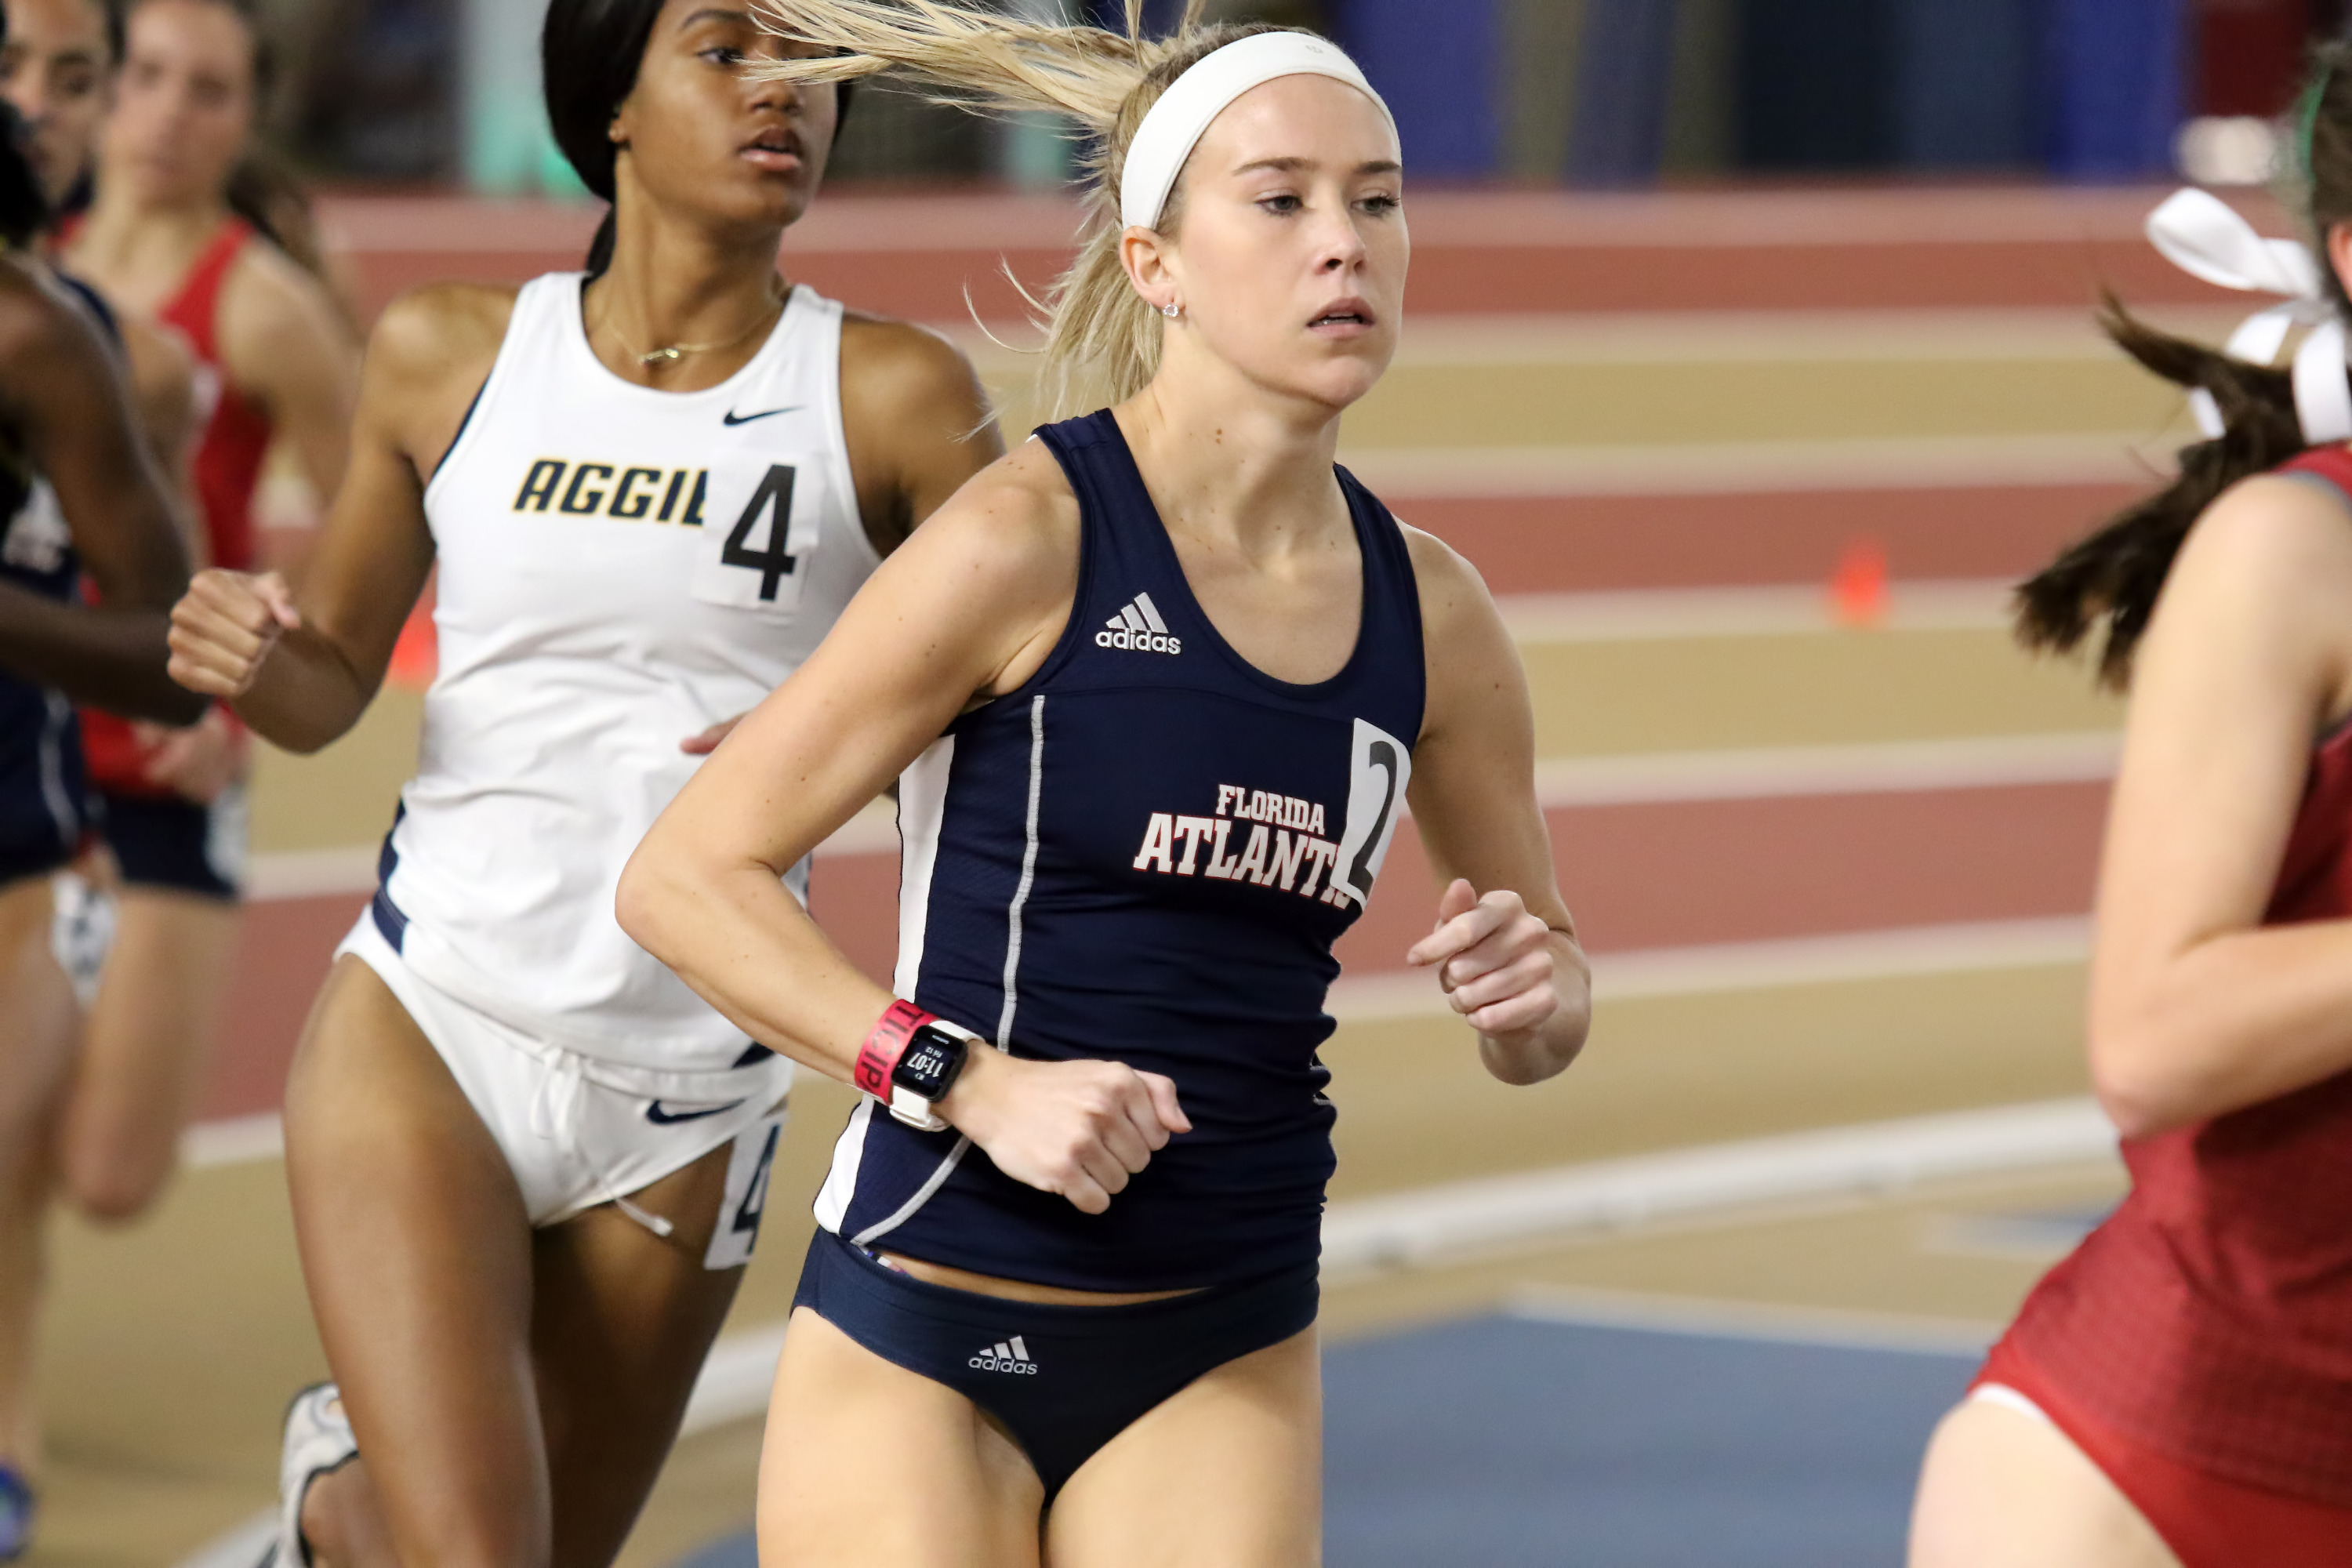 Erica Lersch ran a personal best in the mile on Friday.